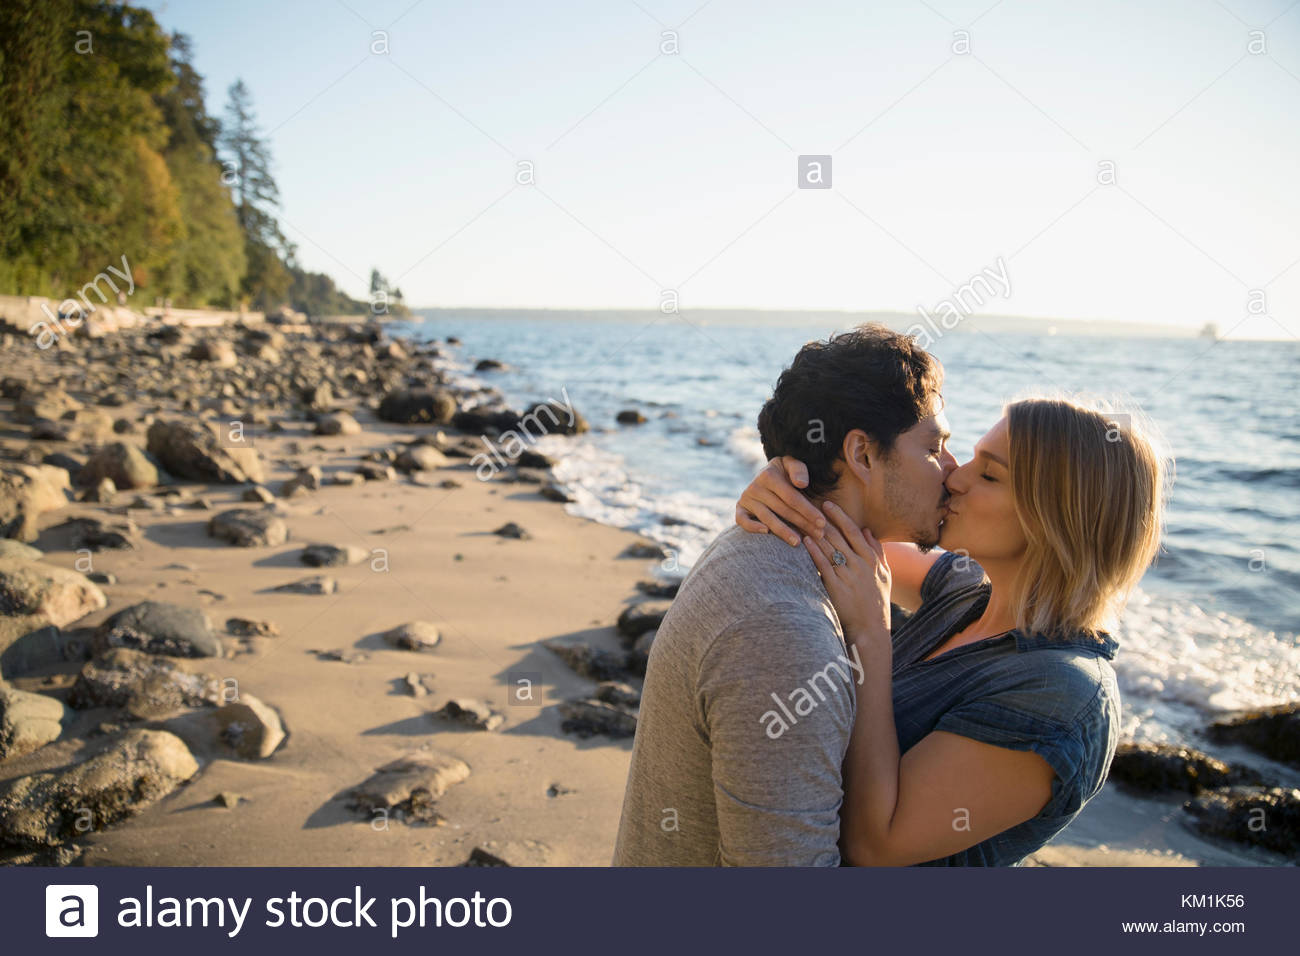 Affectionate couple kissing on sunny ocean beach - Stock Image